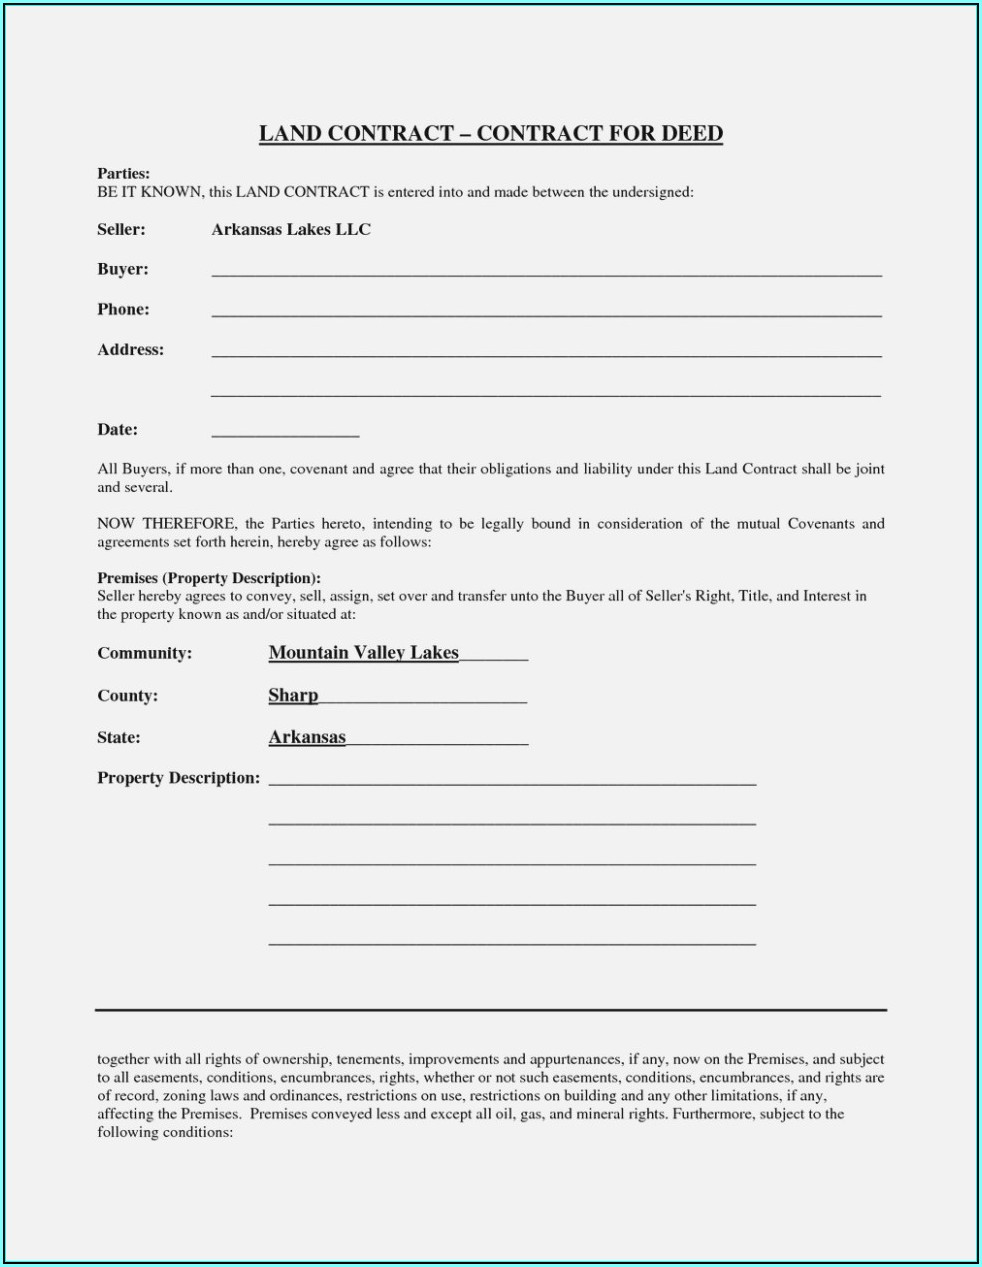 Blank Land Contract Form Michigan